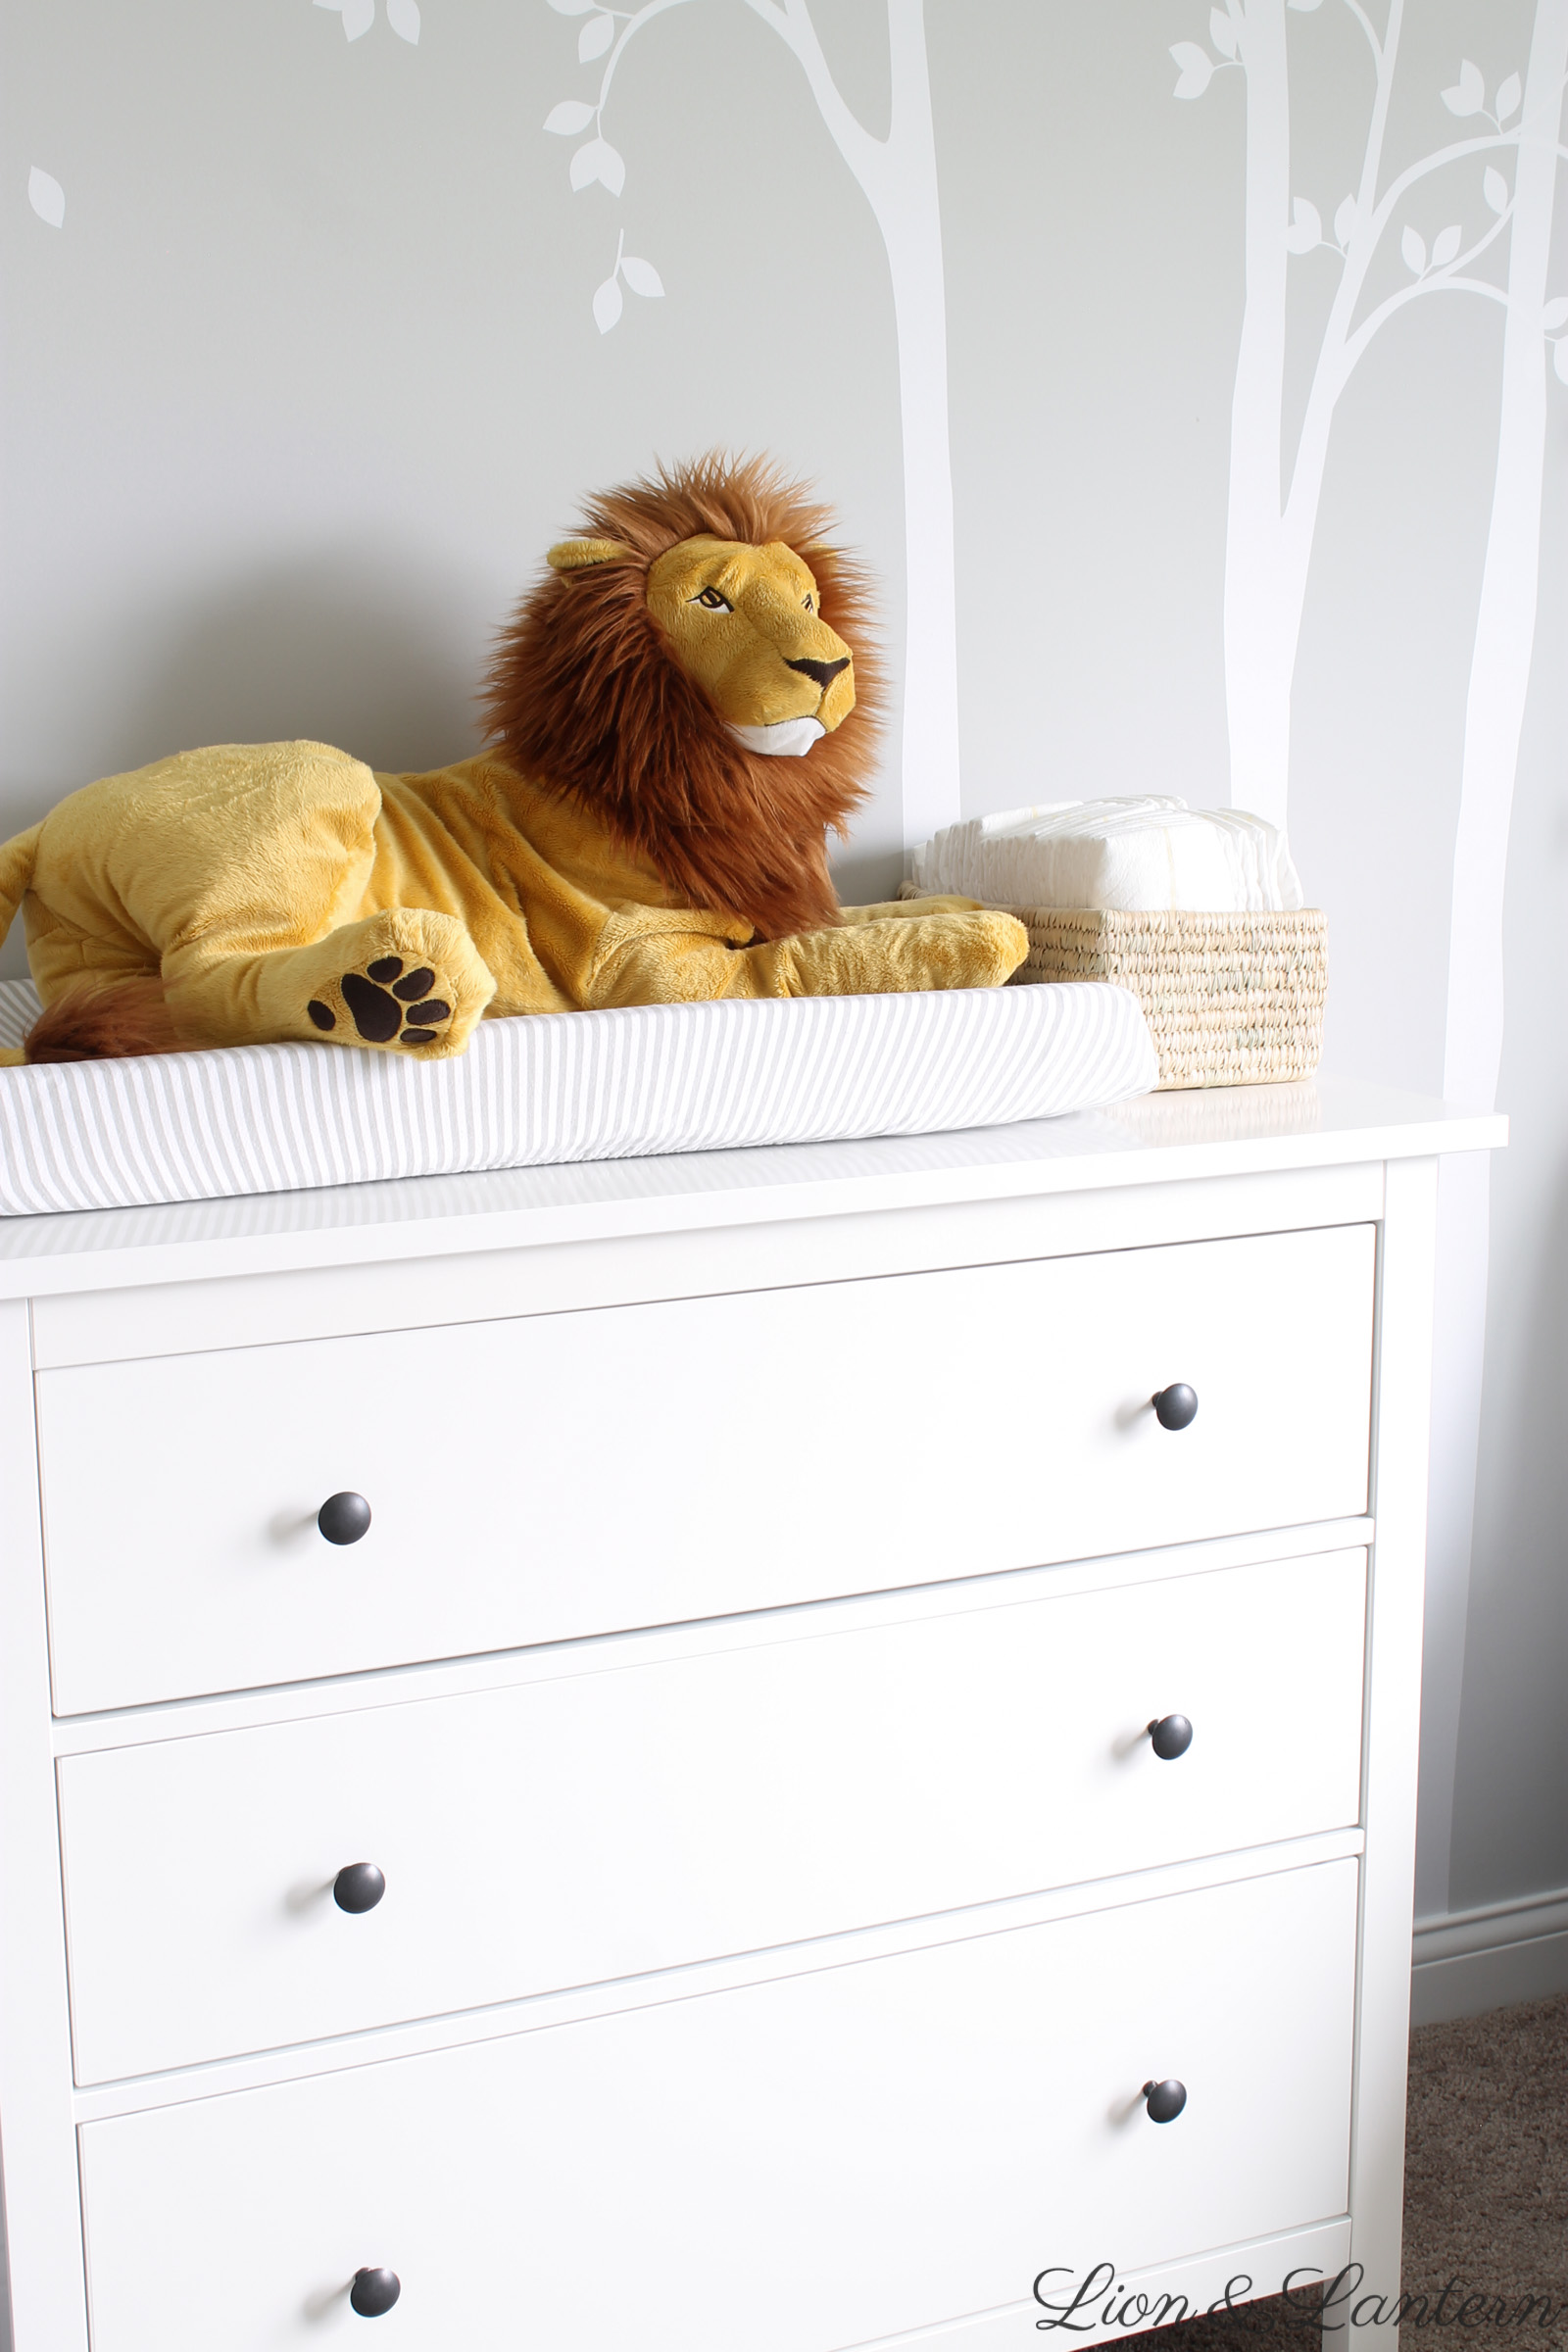 Narnia Inspired Bright & Sweet Nursery Tour at LionAndLantern.com | dresser, soft, pastel, modern, IKEA picture ledge, book ledge, rainbow baby, kids room, organized, clean